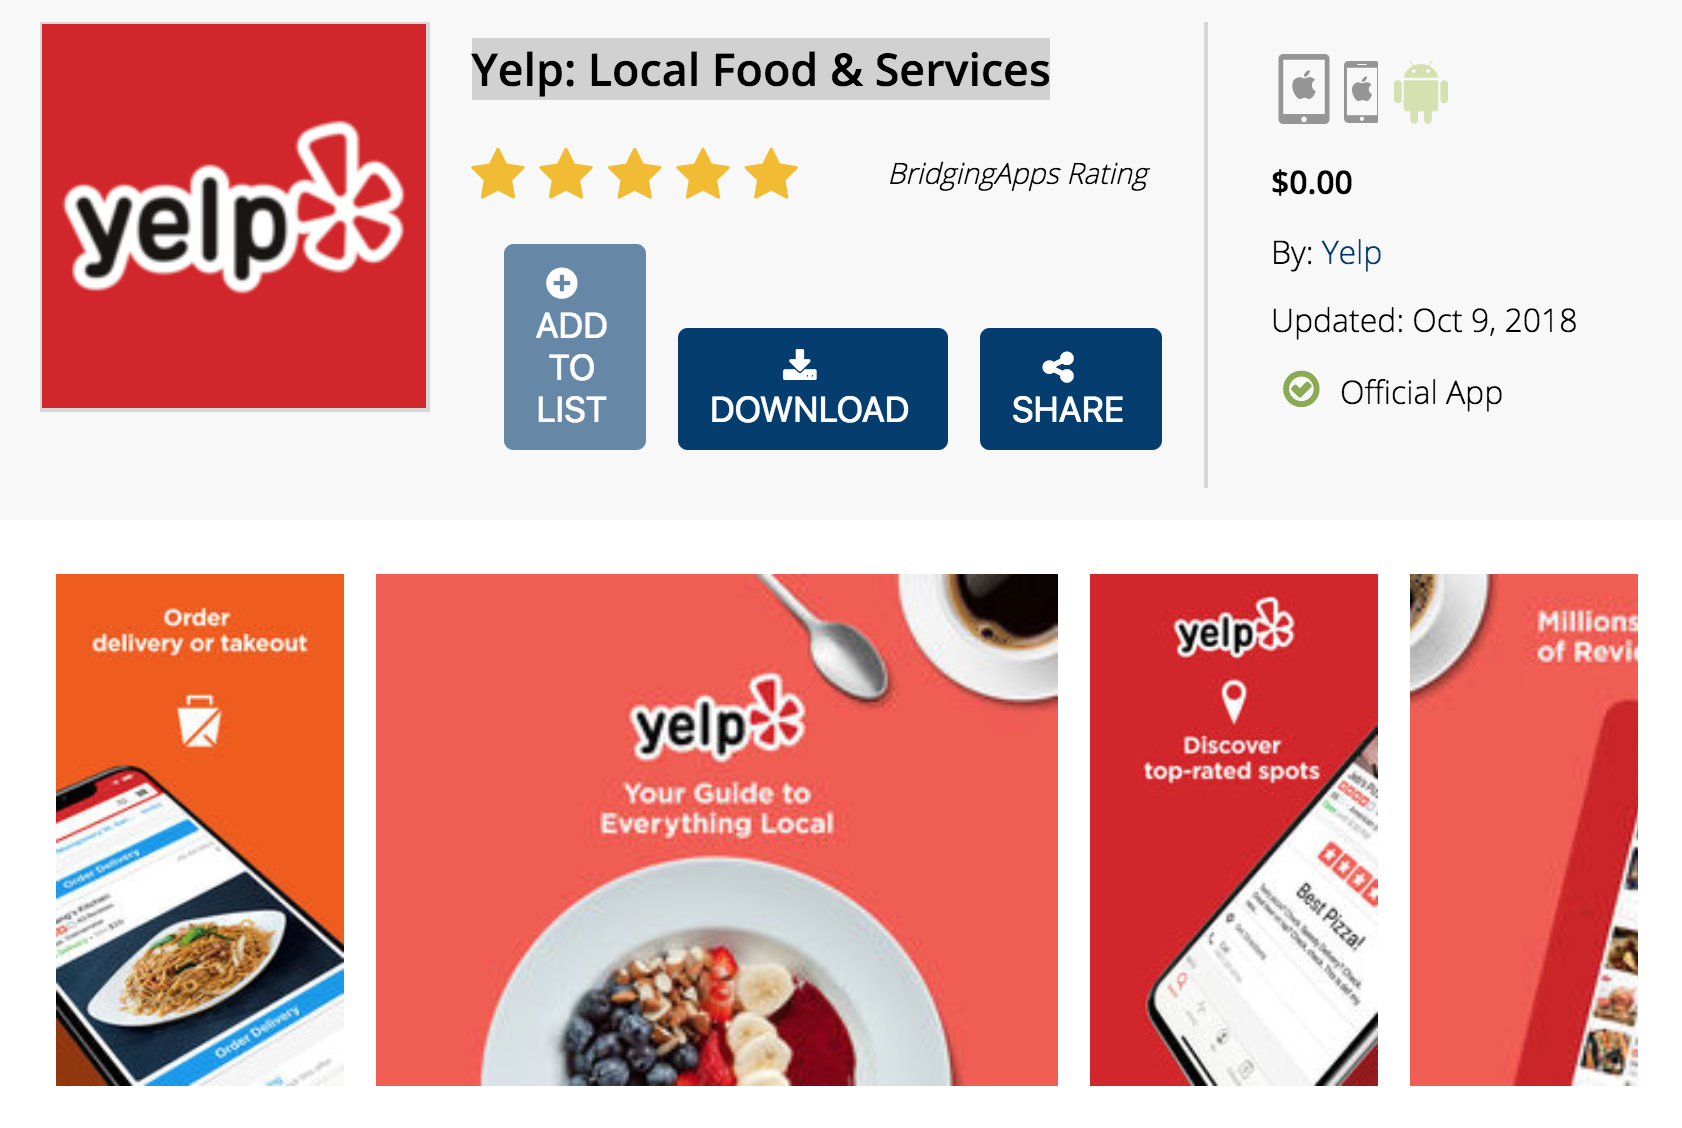 BridgingApps Reviewed App | Yelp: Local Food & Services